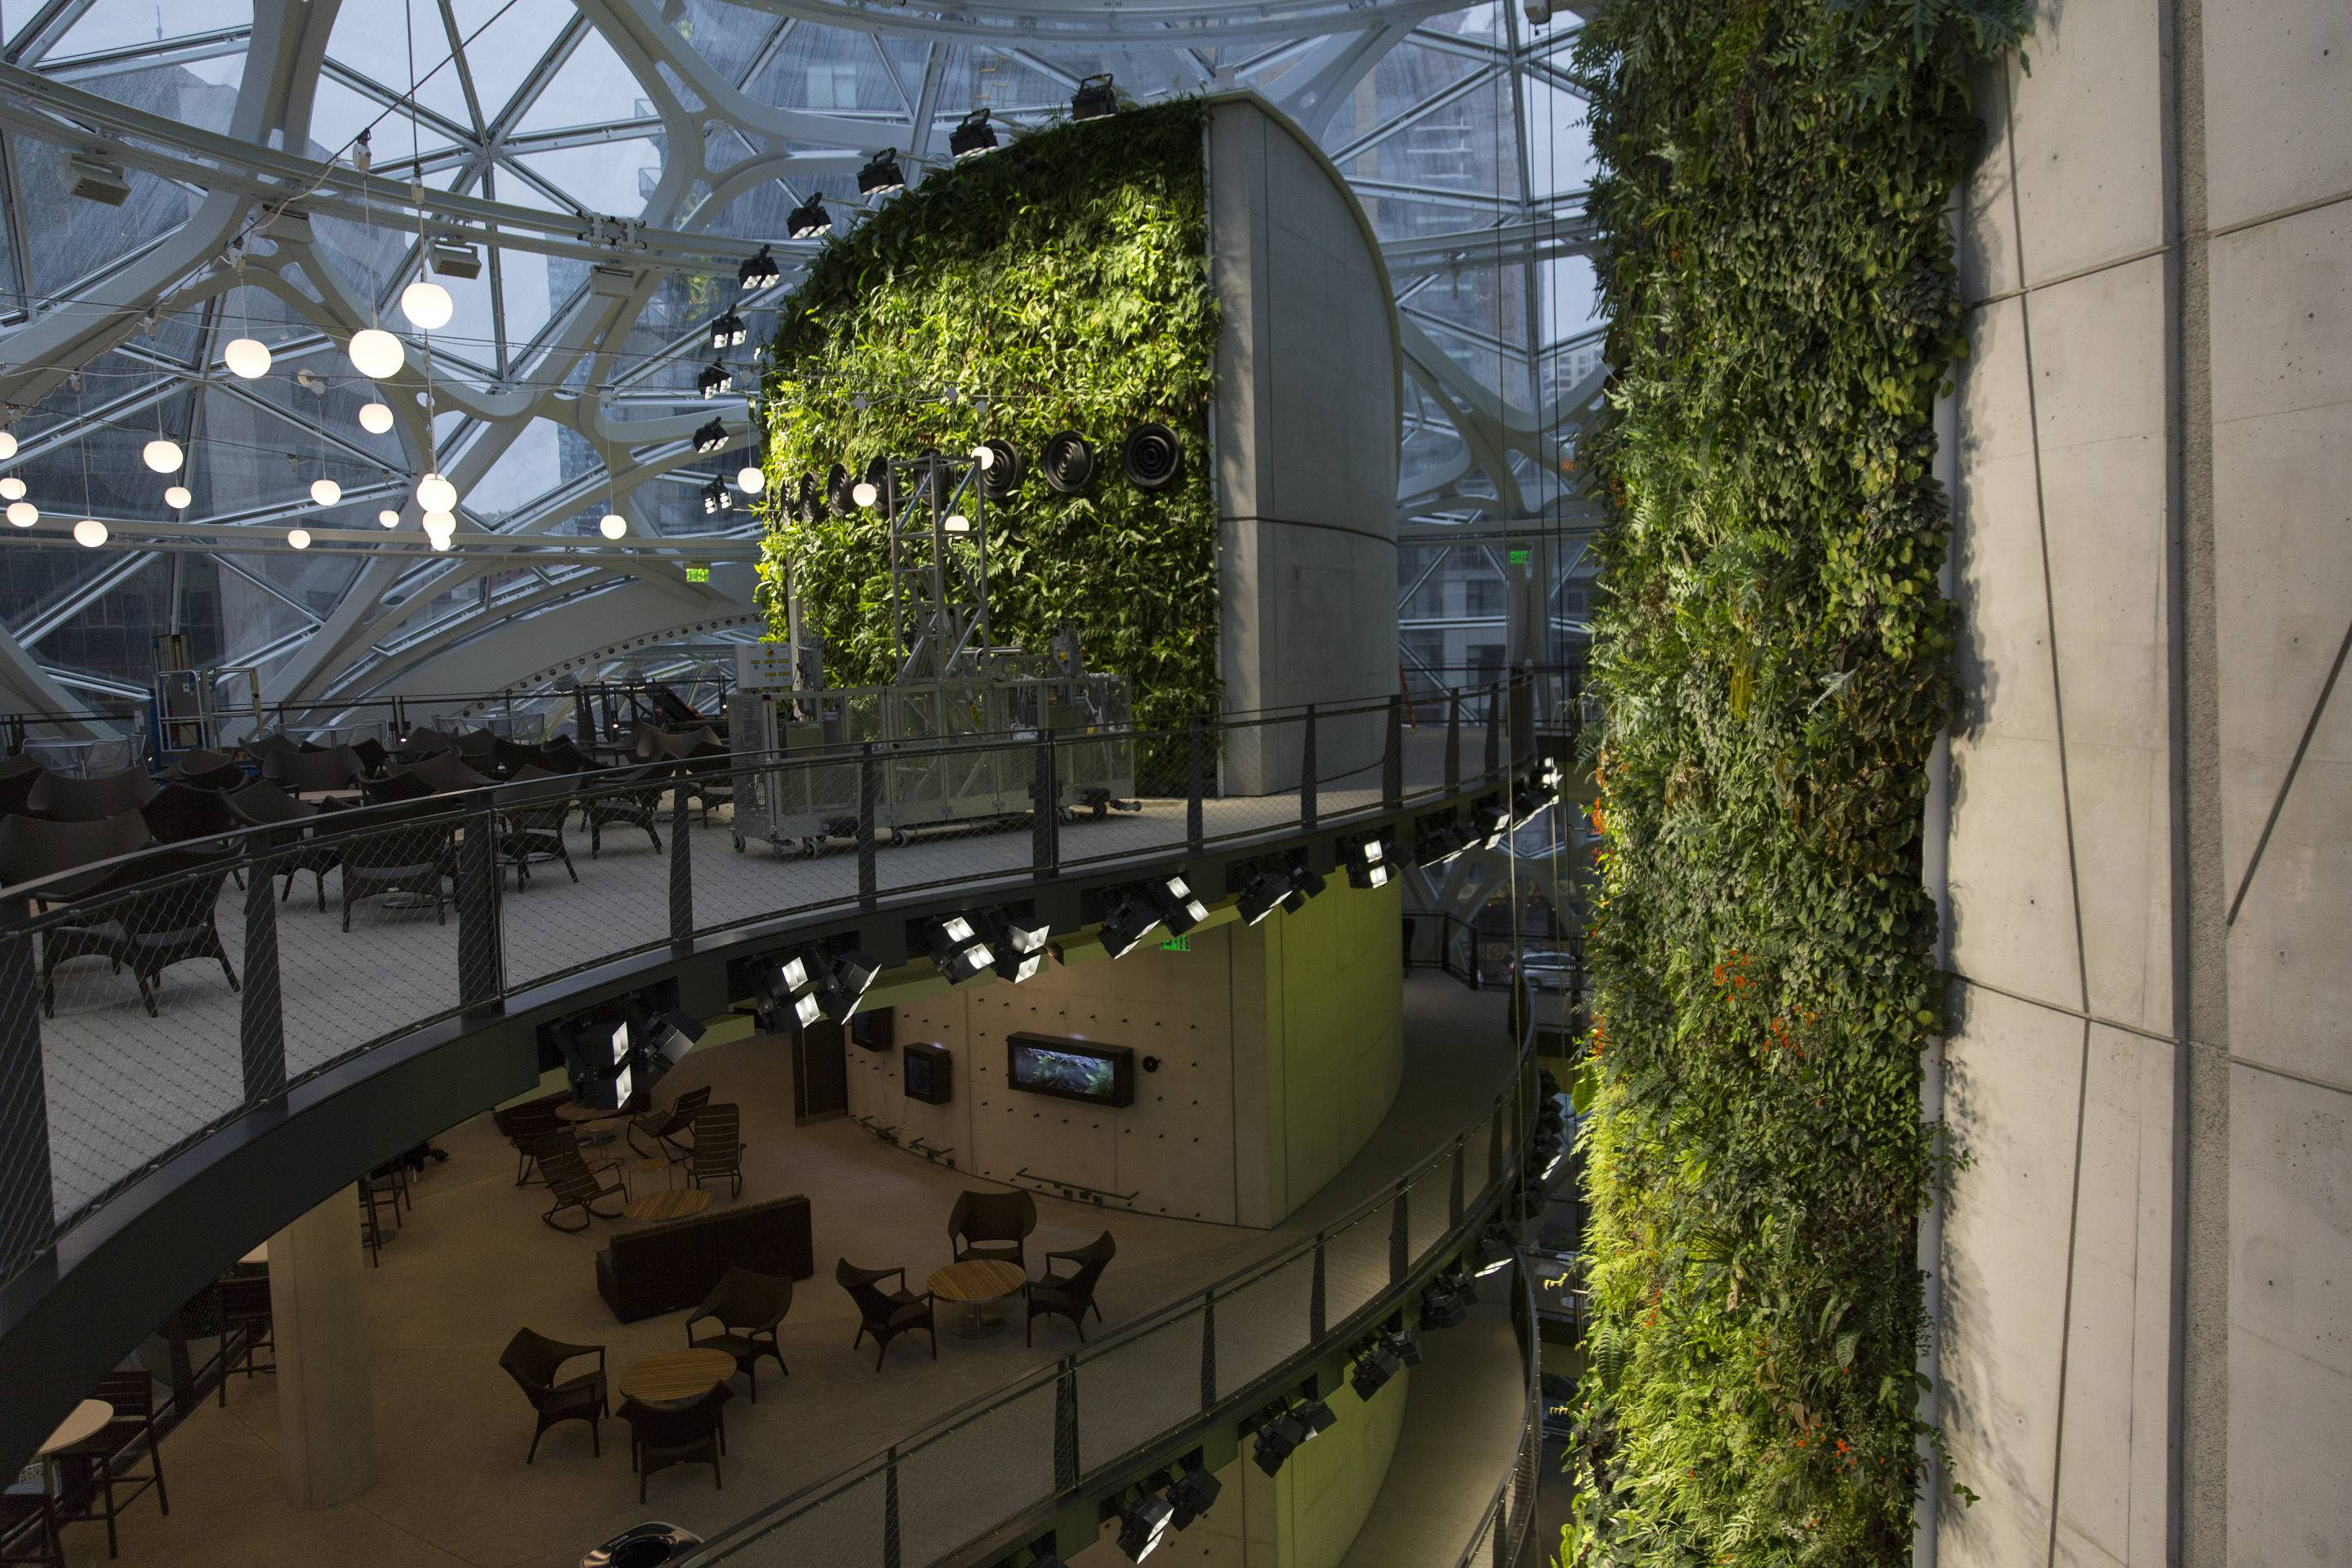 Inside Amazon S Spheres Photos Of The New Seattle Rainforest